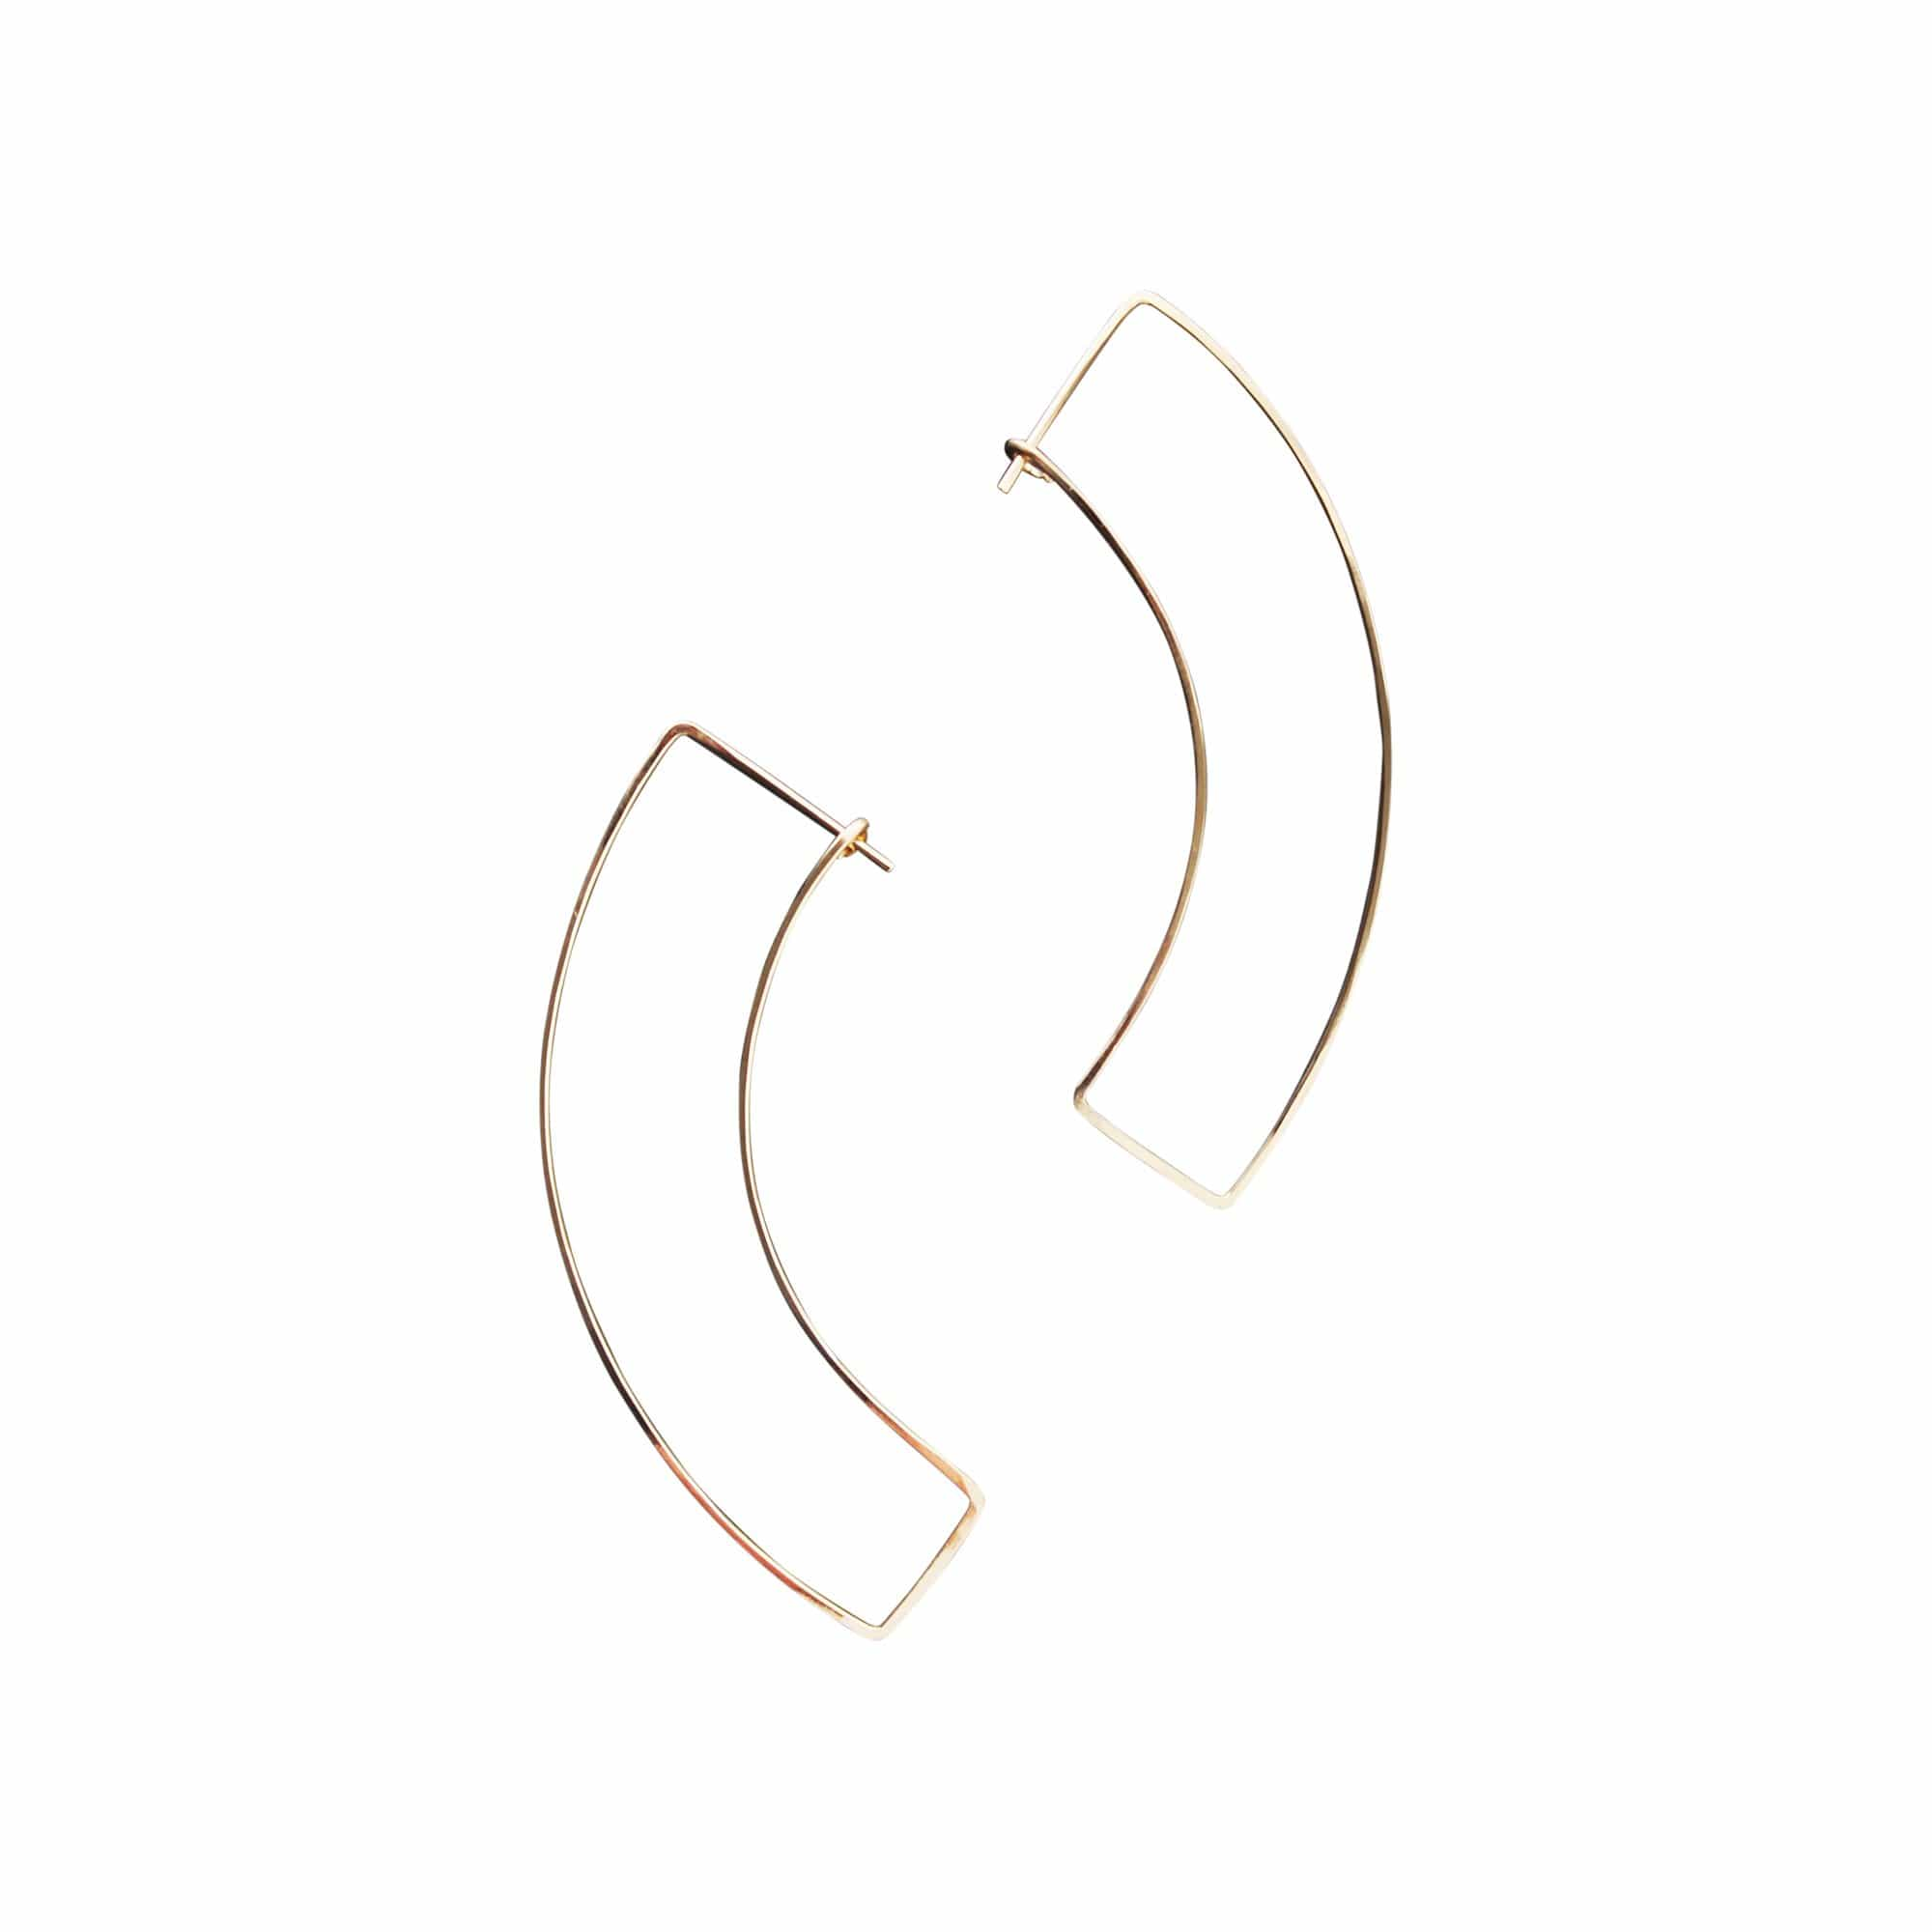 L.Greenwalt Jewelry Earrings Gold Fill Curve Gold Hoop Earrings